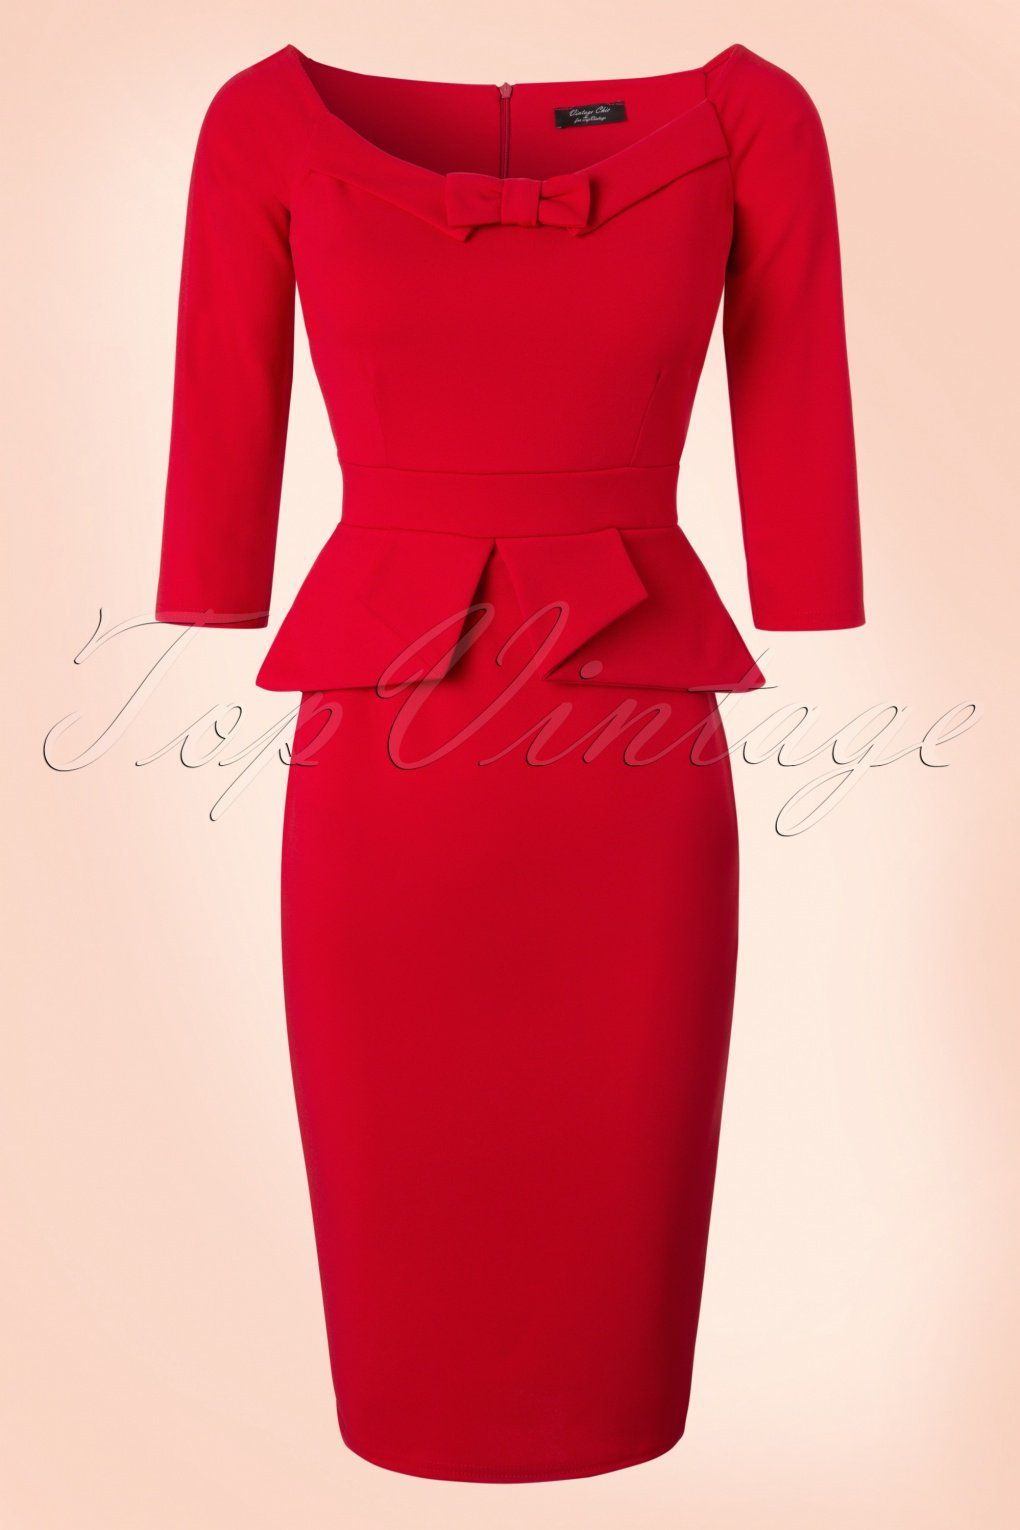 2fbc8714d2f2e 1940s Cocktail Dresses, Party Dresses 50s Paloma Peplum Pencil Dress in  Lipstick Red £50.60 AT vintagedancer.com